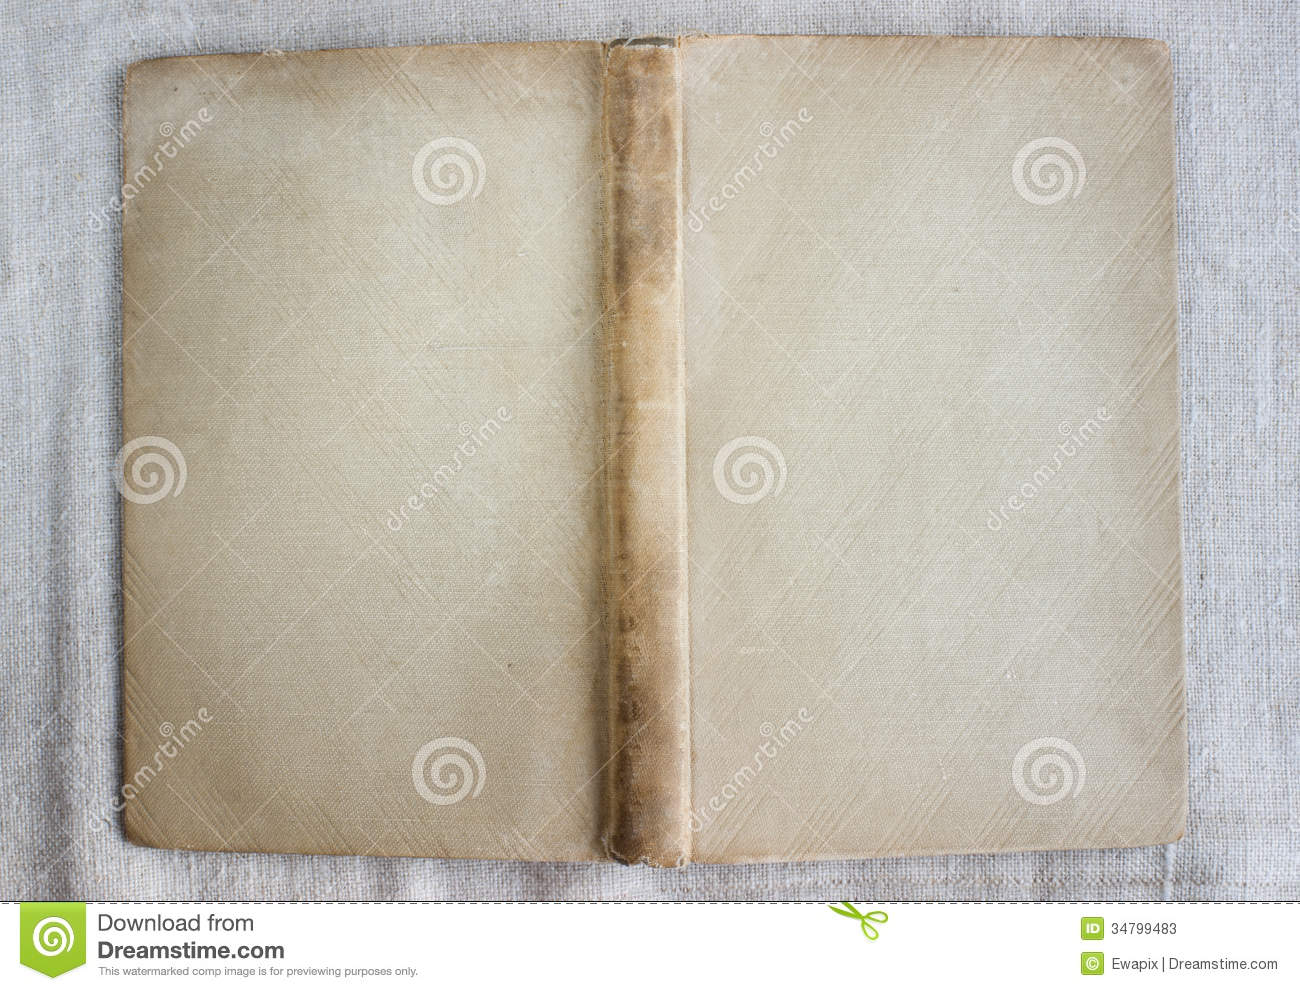 Fabric Book Cover Texture : Antique book cover open top view stock image of